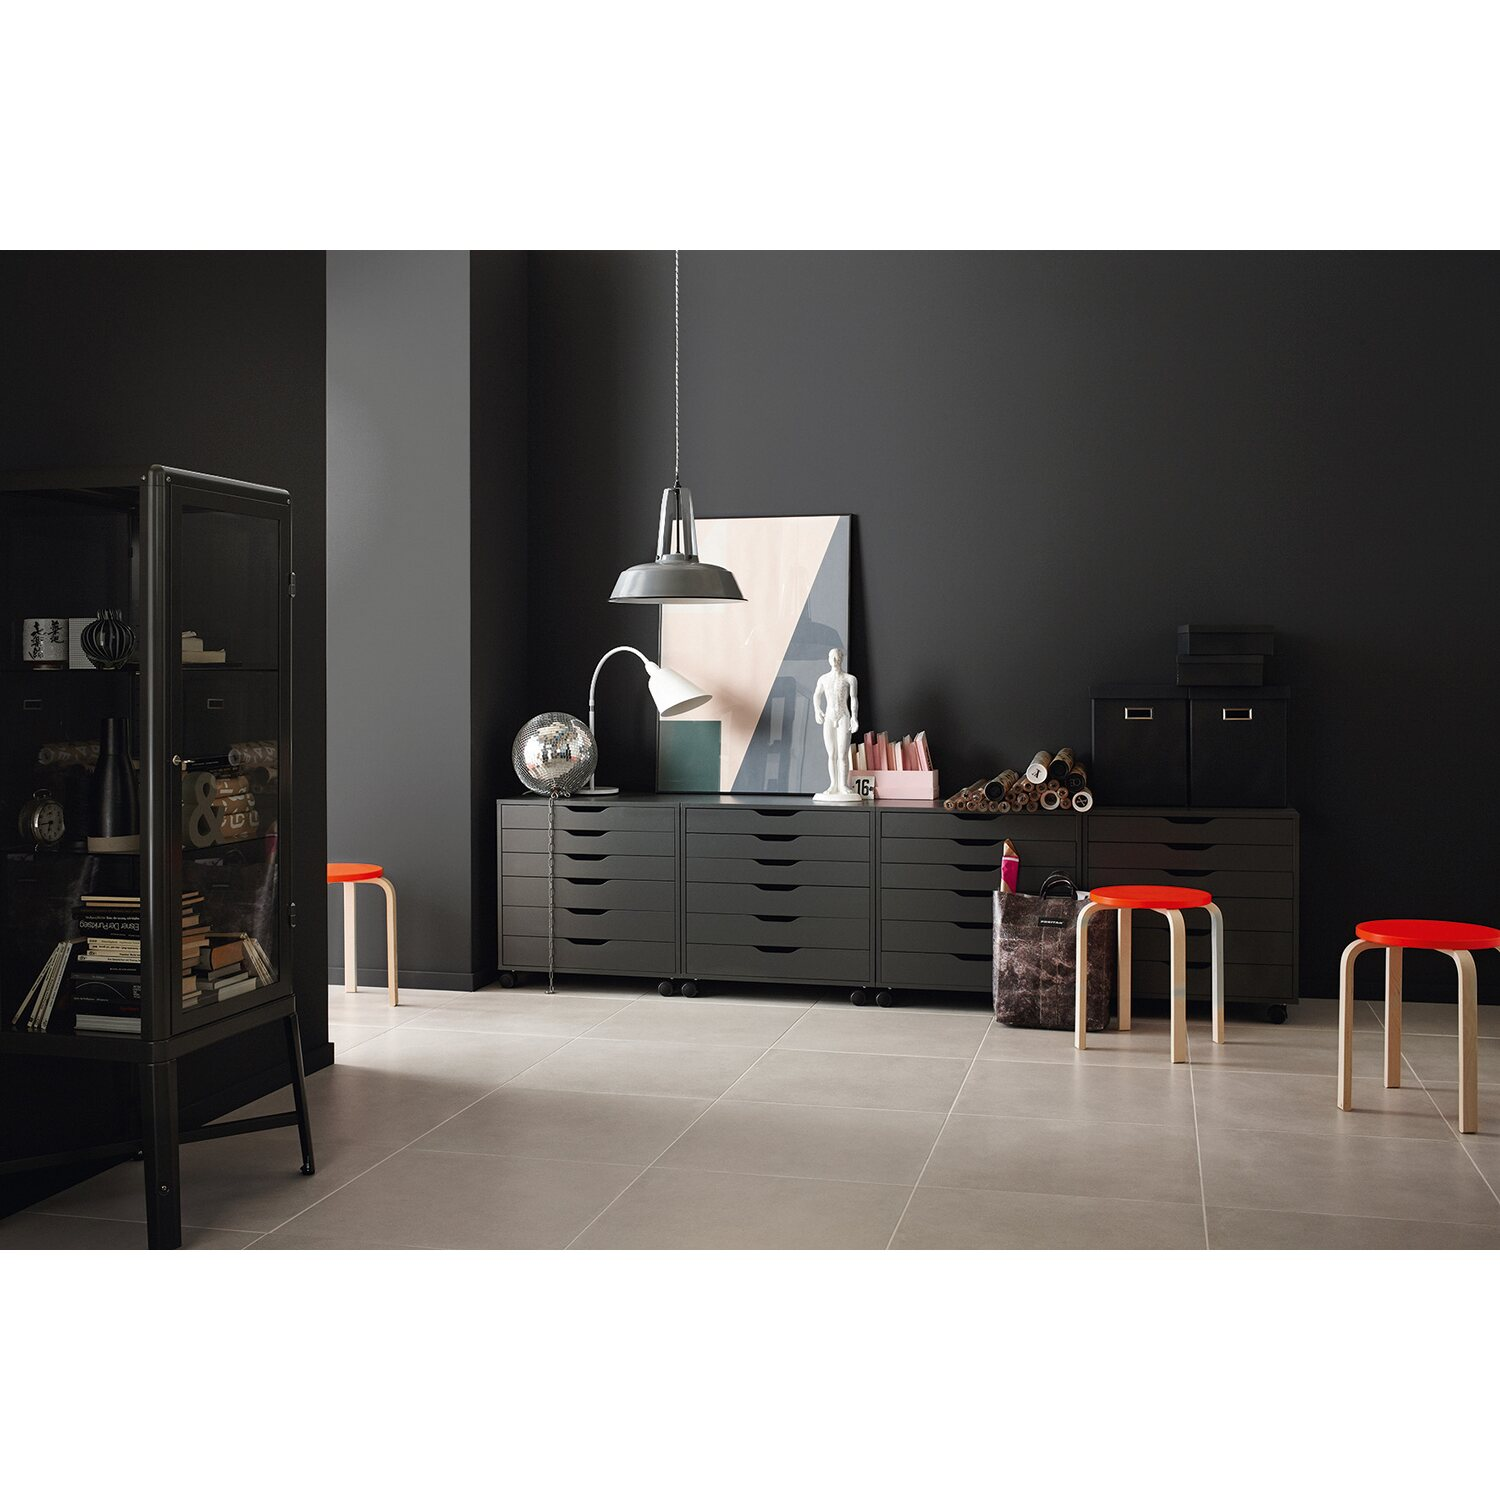 sch ner wohnen trendfarbe luna matt 2 5 l kaufen bei obi. Black Bedroom Furniture Sets. Home Design Ideas